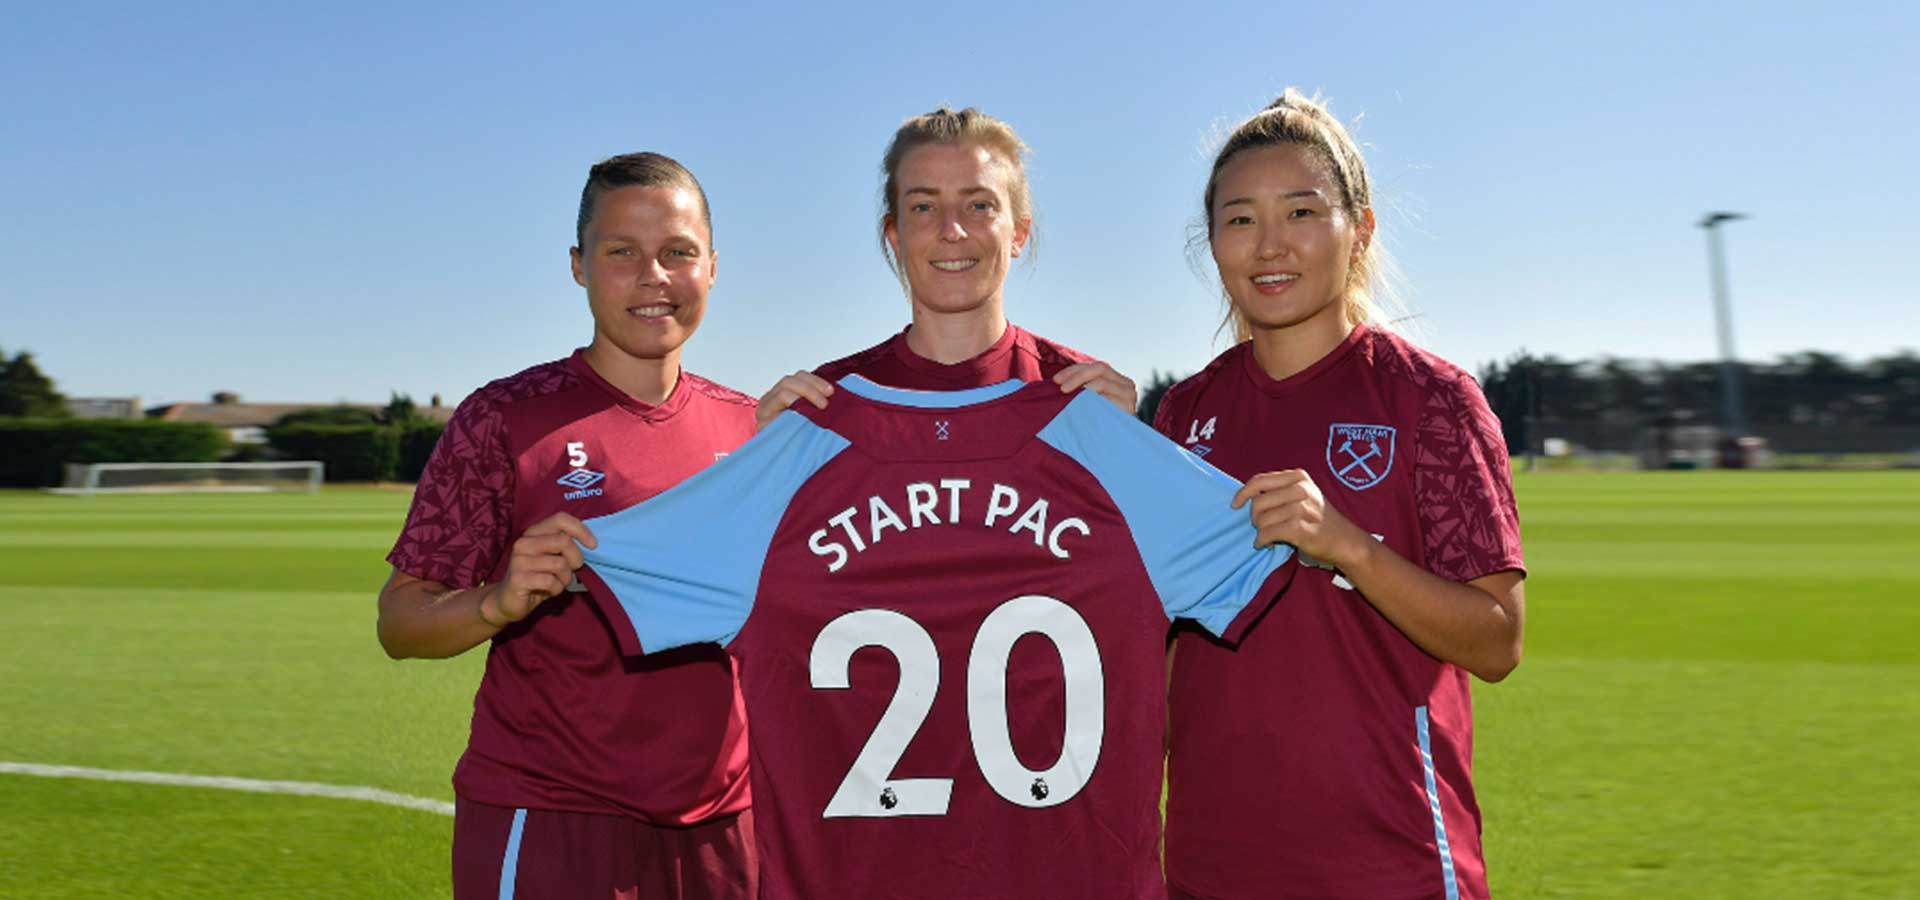 START PAC westham united womens football club sponsorship